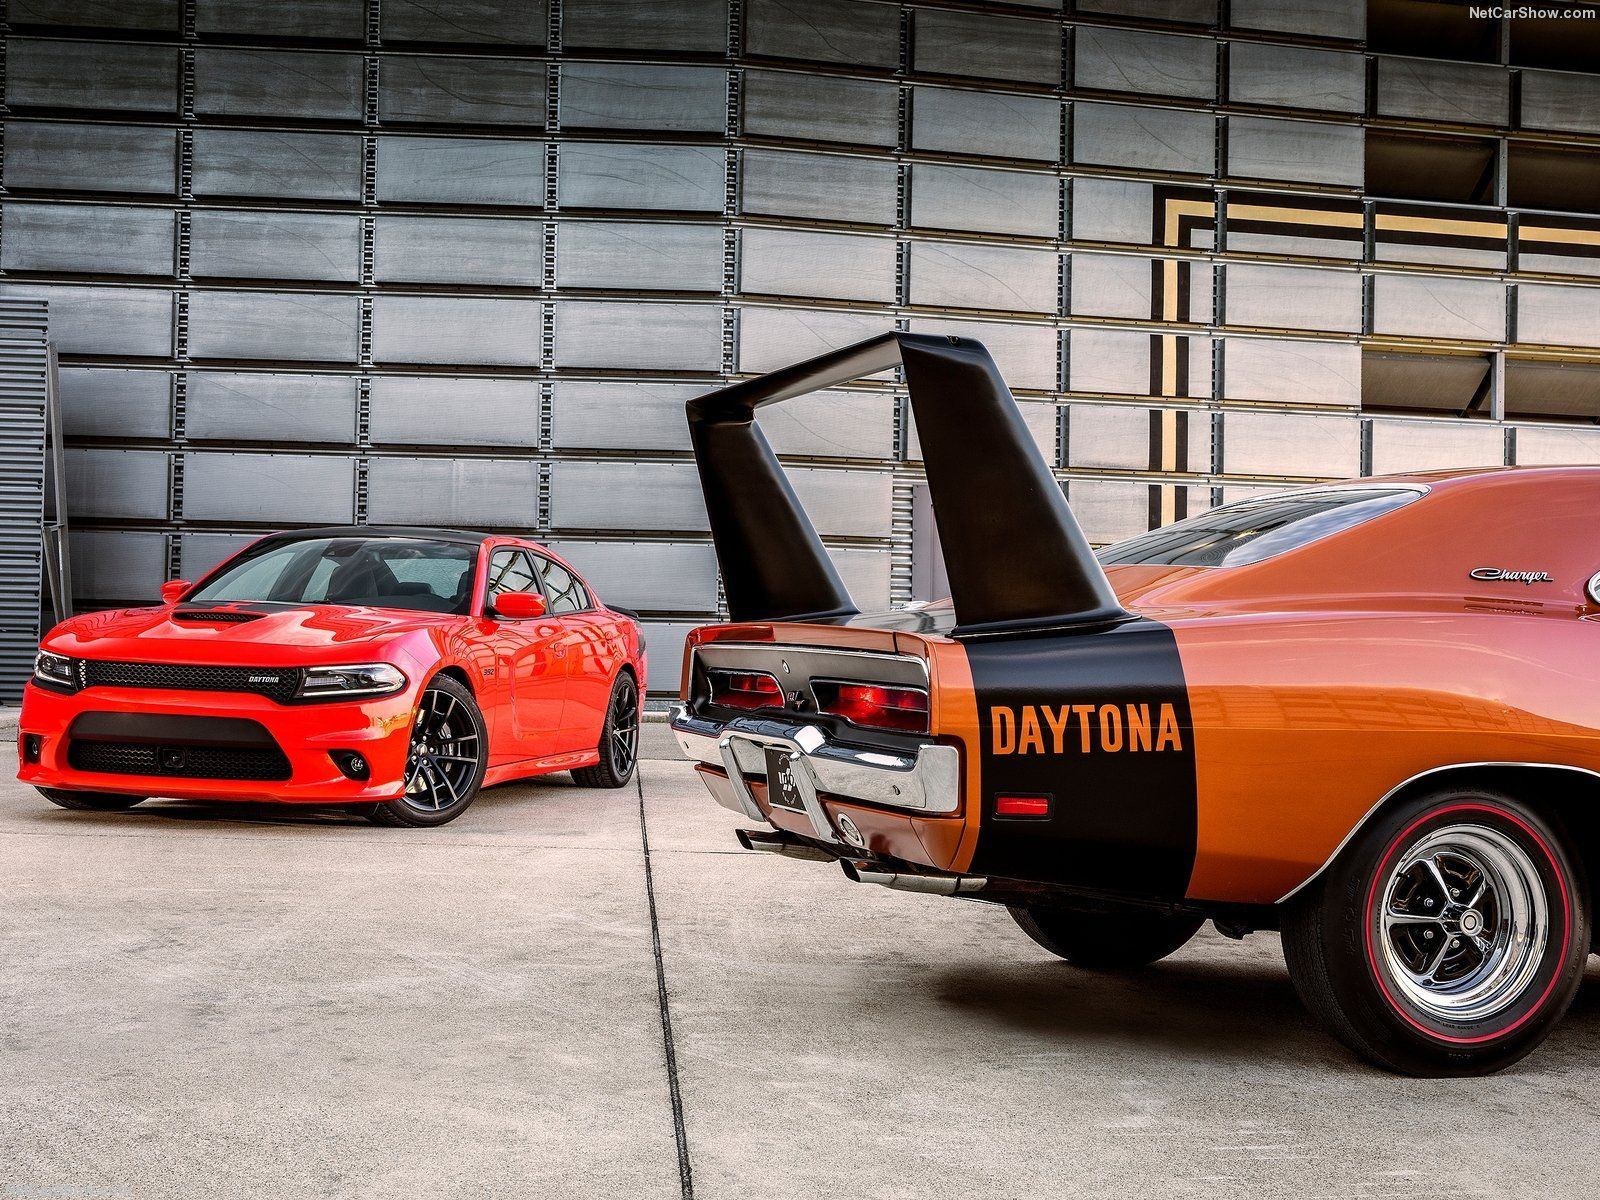 2017 dodge charger daytona 392 left and 1969 dodge charger daytona right image fca by nick utc dodge believes the golden era of american muscle cars is